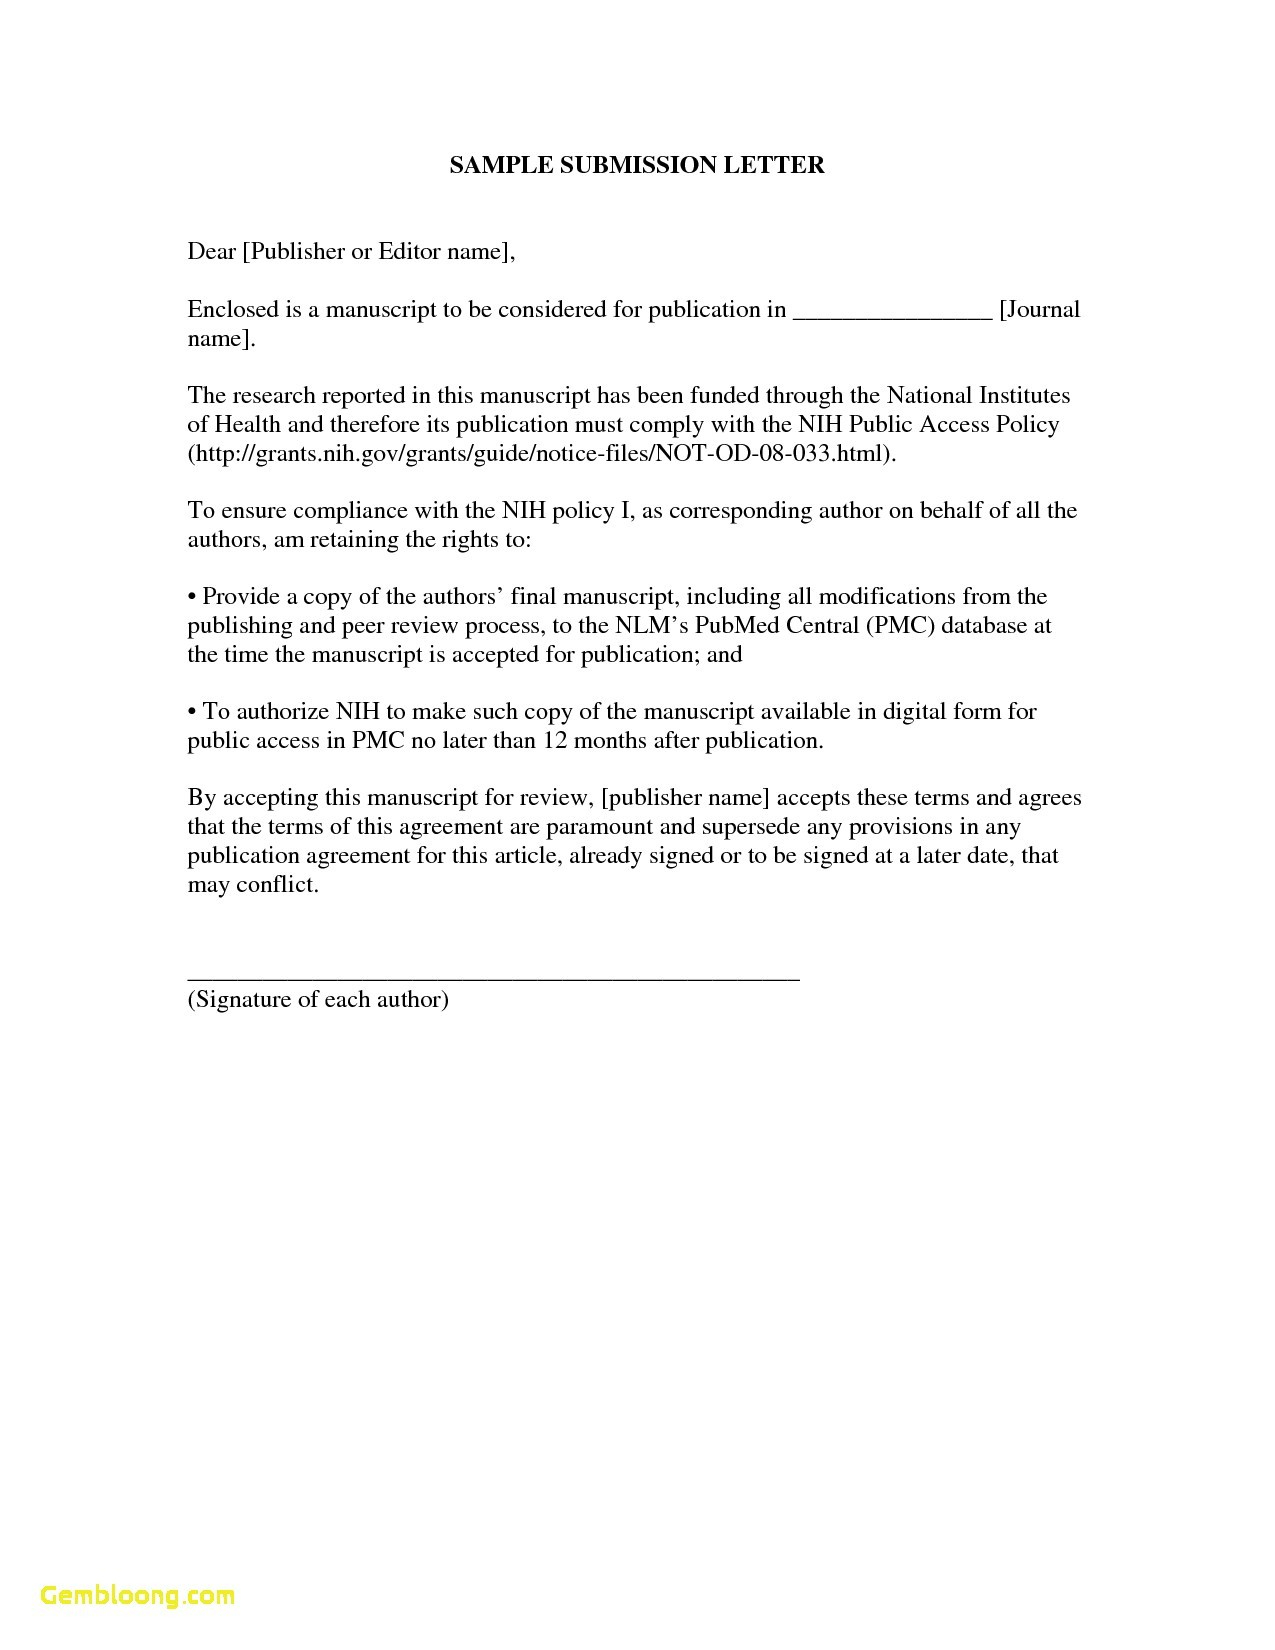 Submittal Cover Letter Template - Covering Letter format for Document Submission